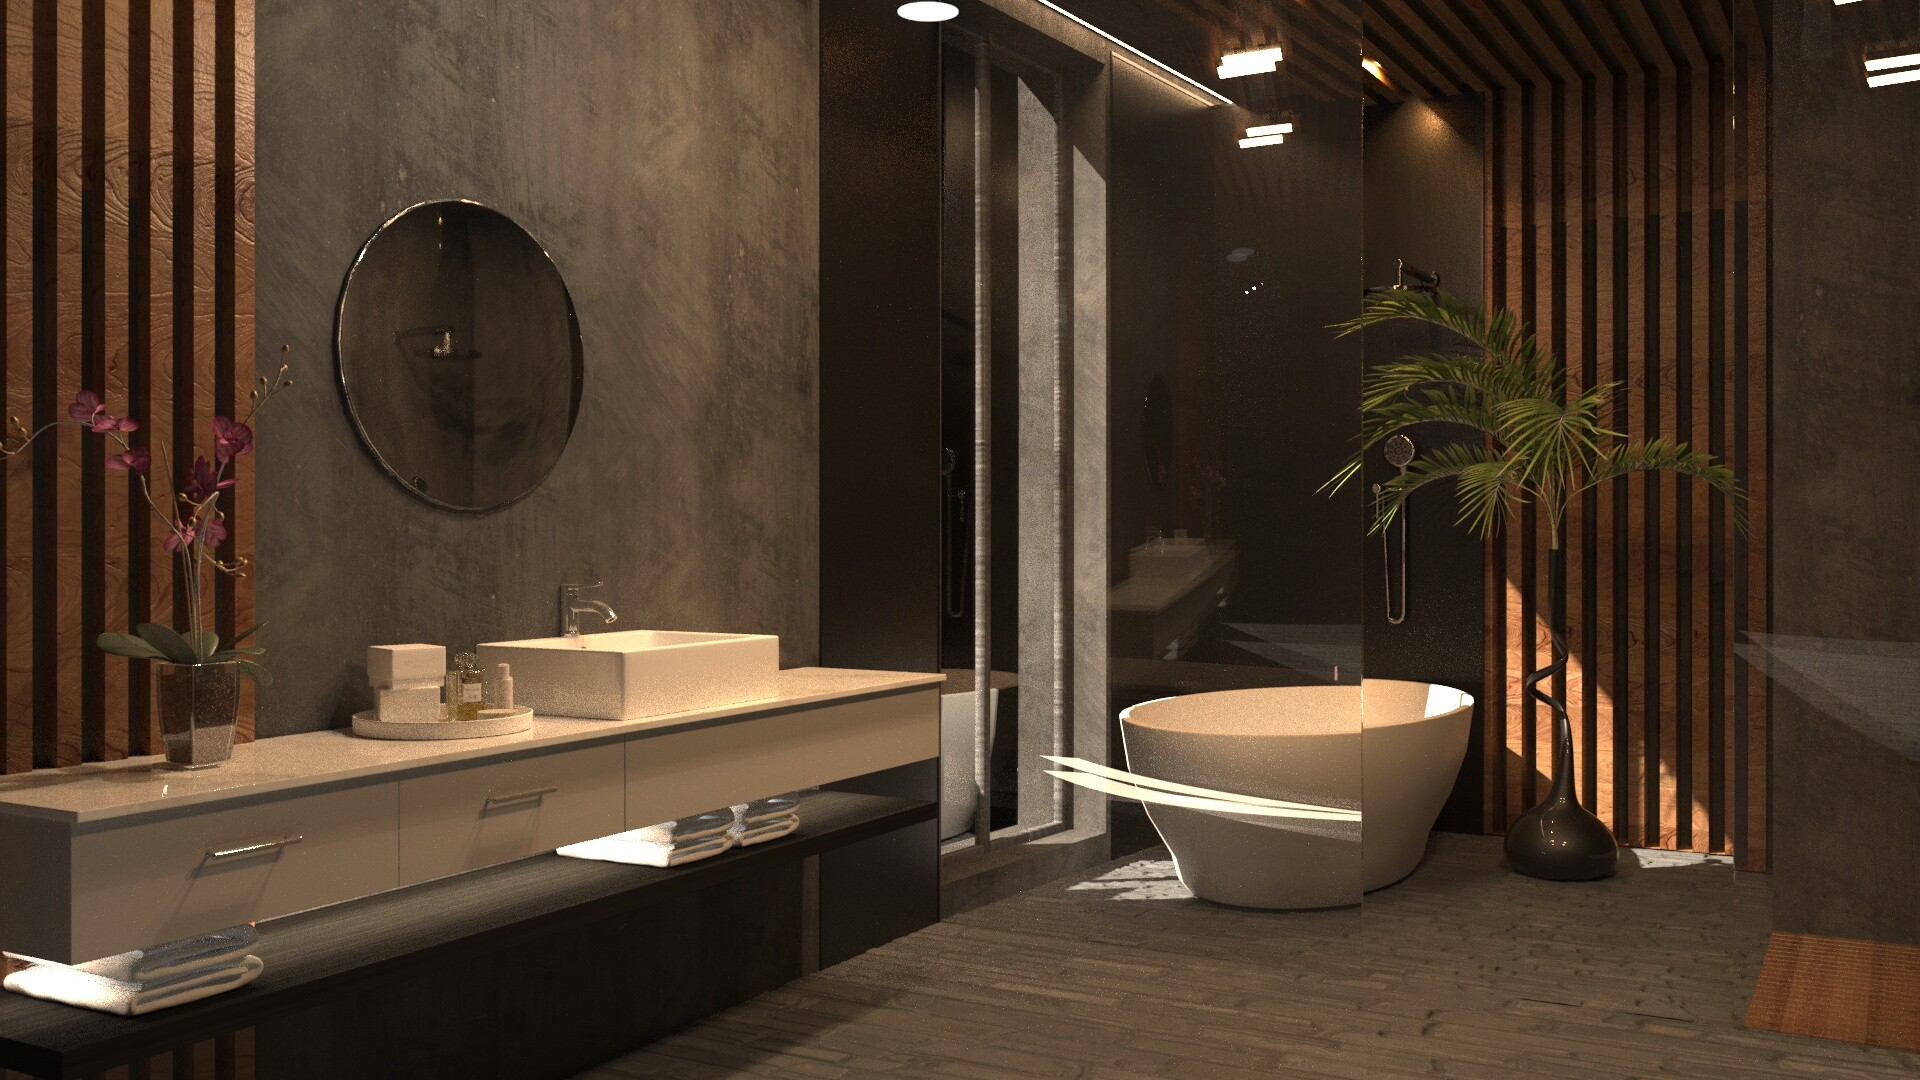 Artstation Bathroom Design 3ds Max Corona Lasha Jvaridze